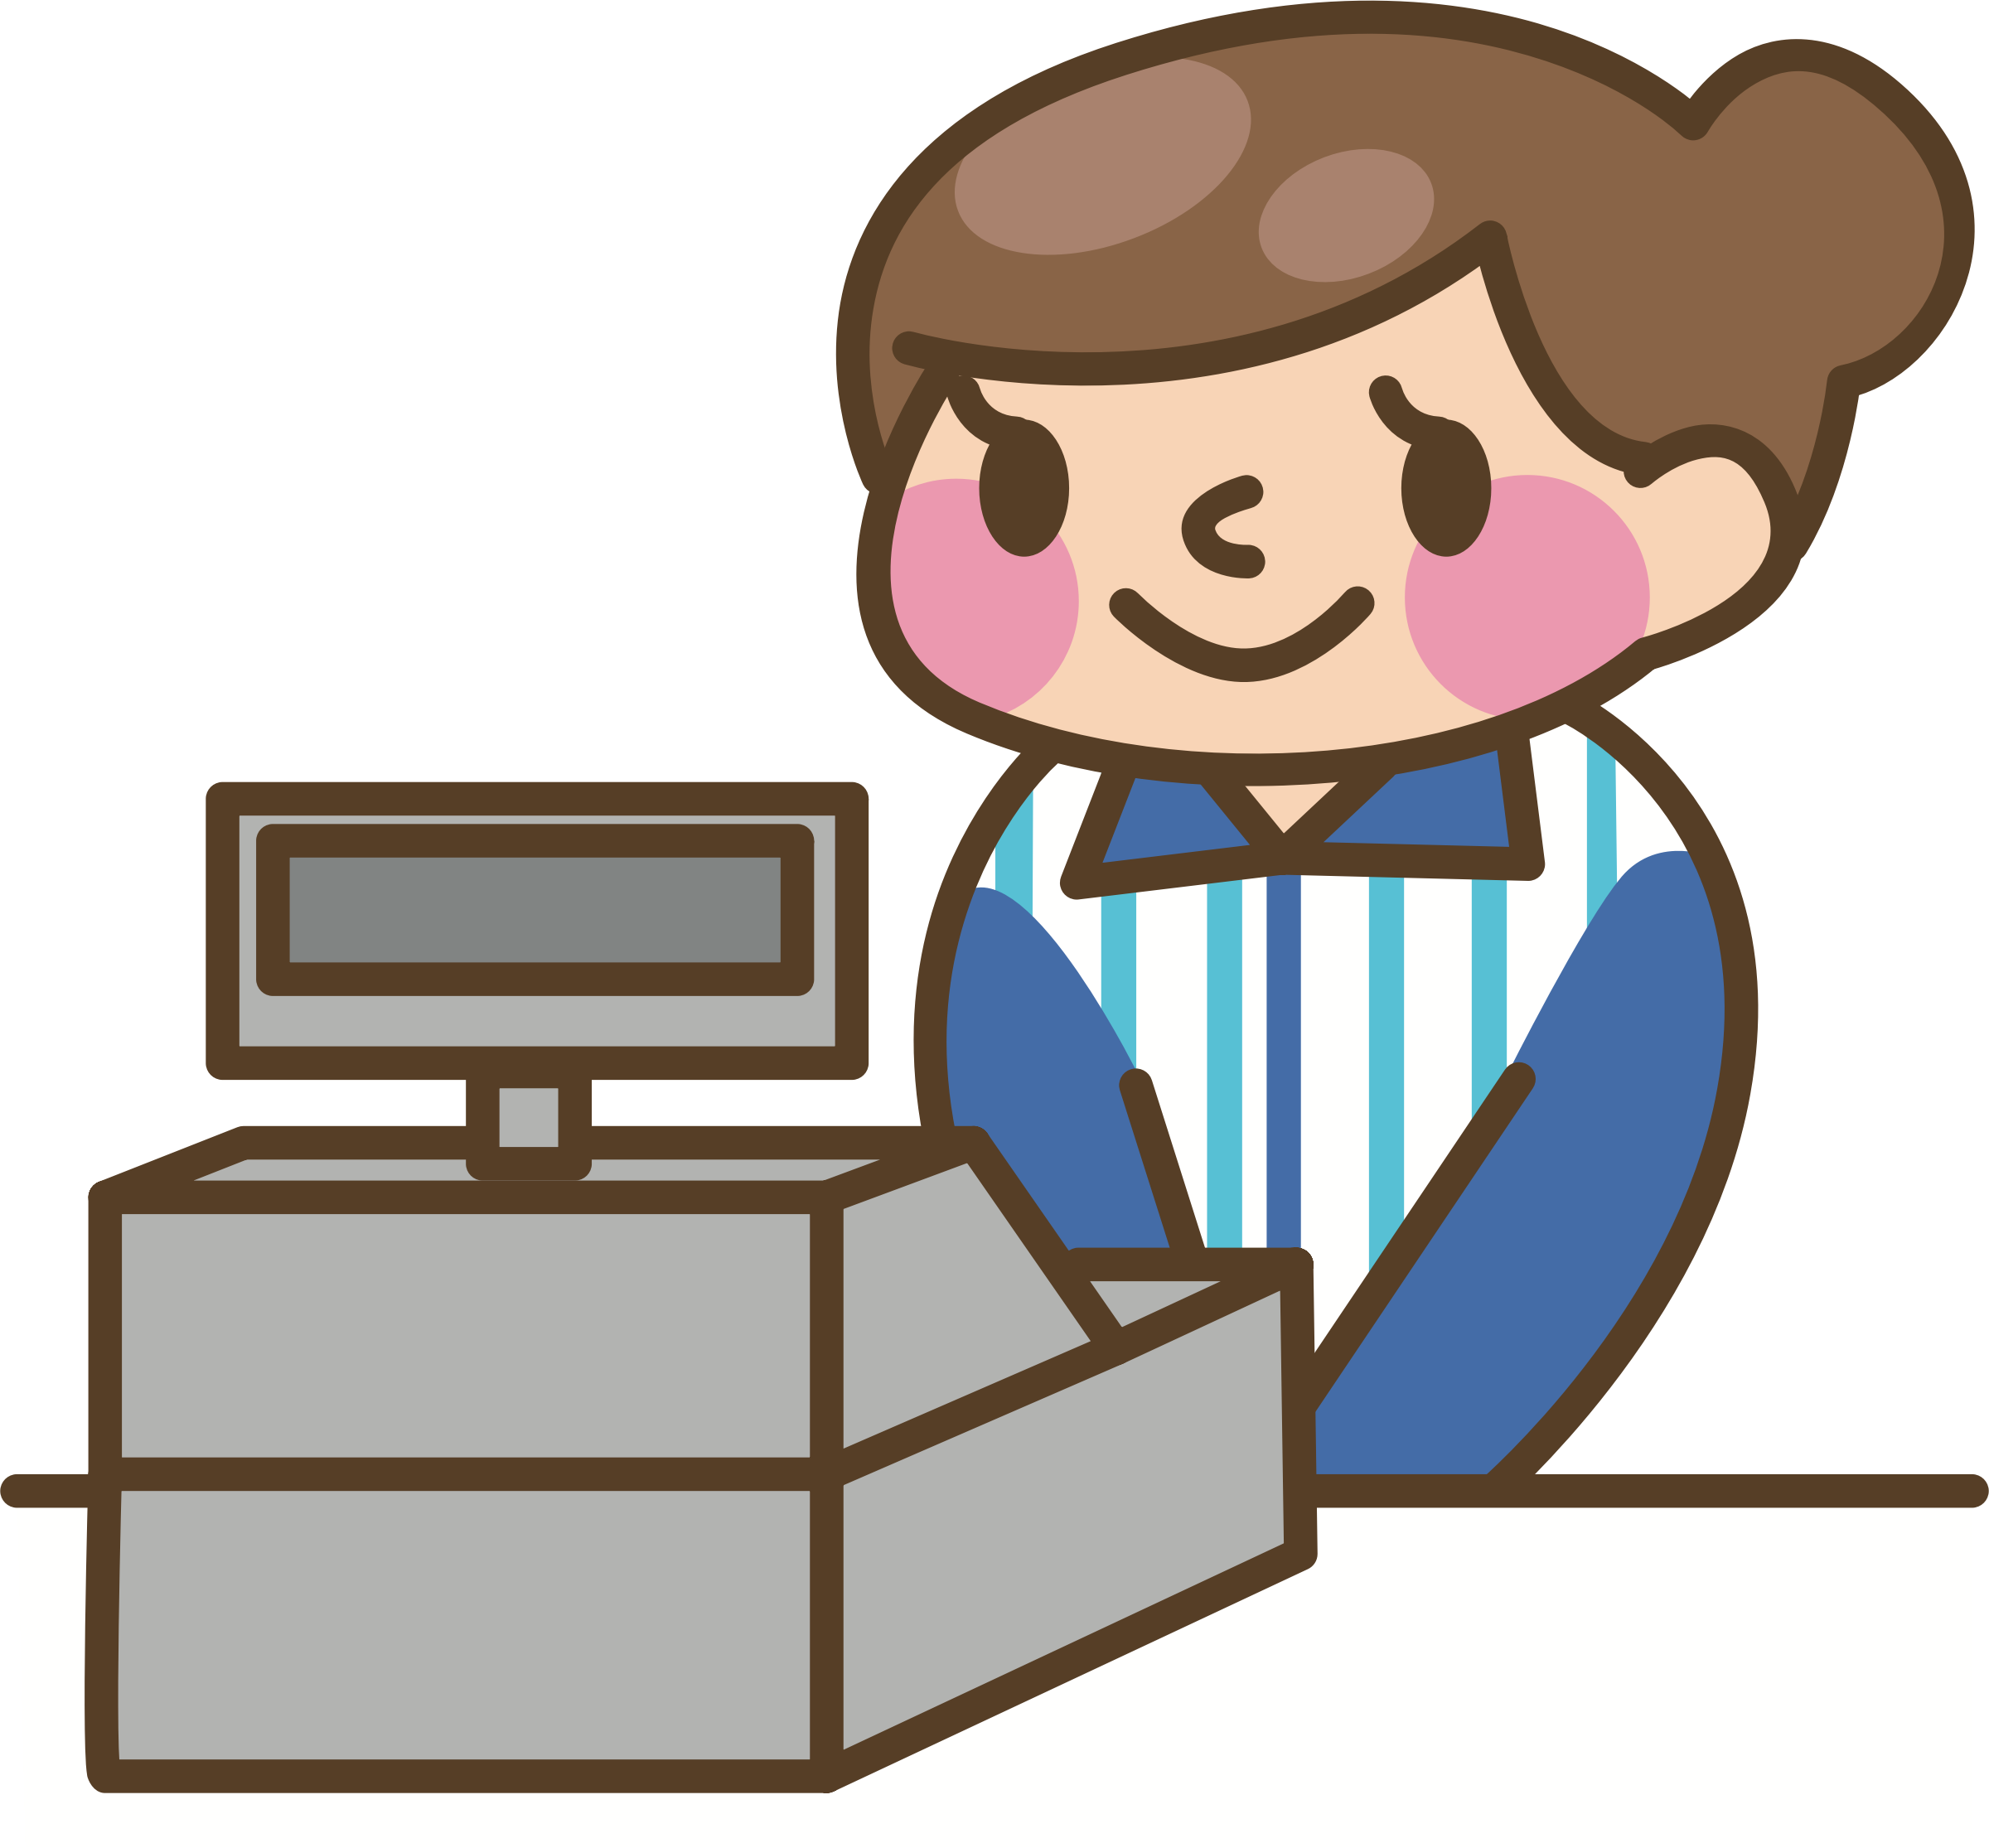 Big image png. Cashier clipart female